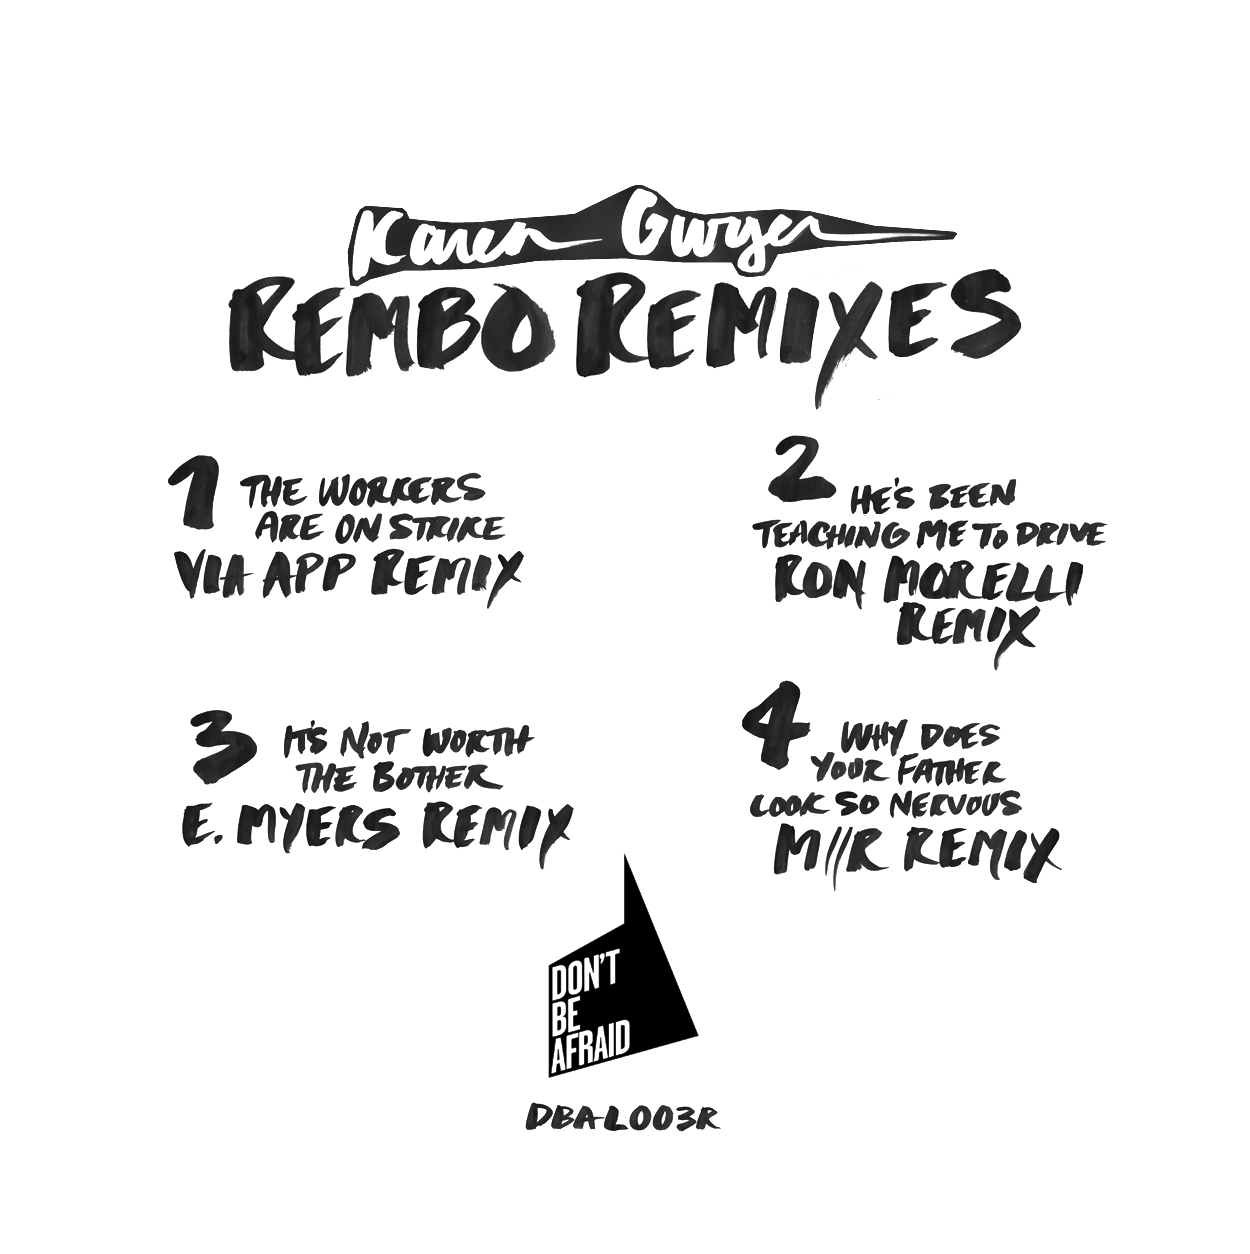 Rembo_Remixes_Label_B.jpg